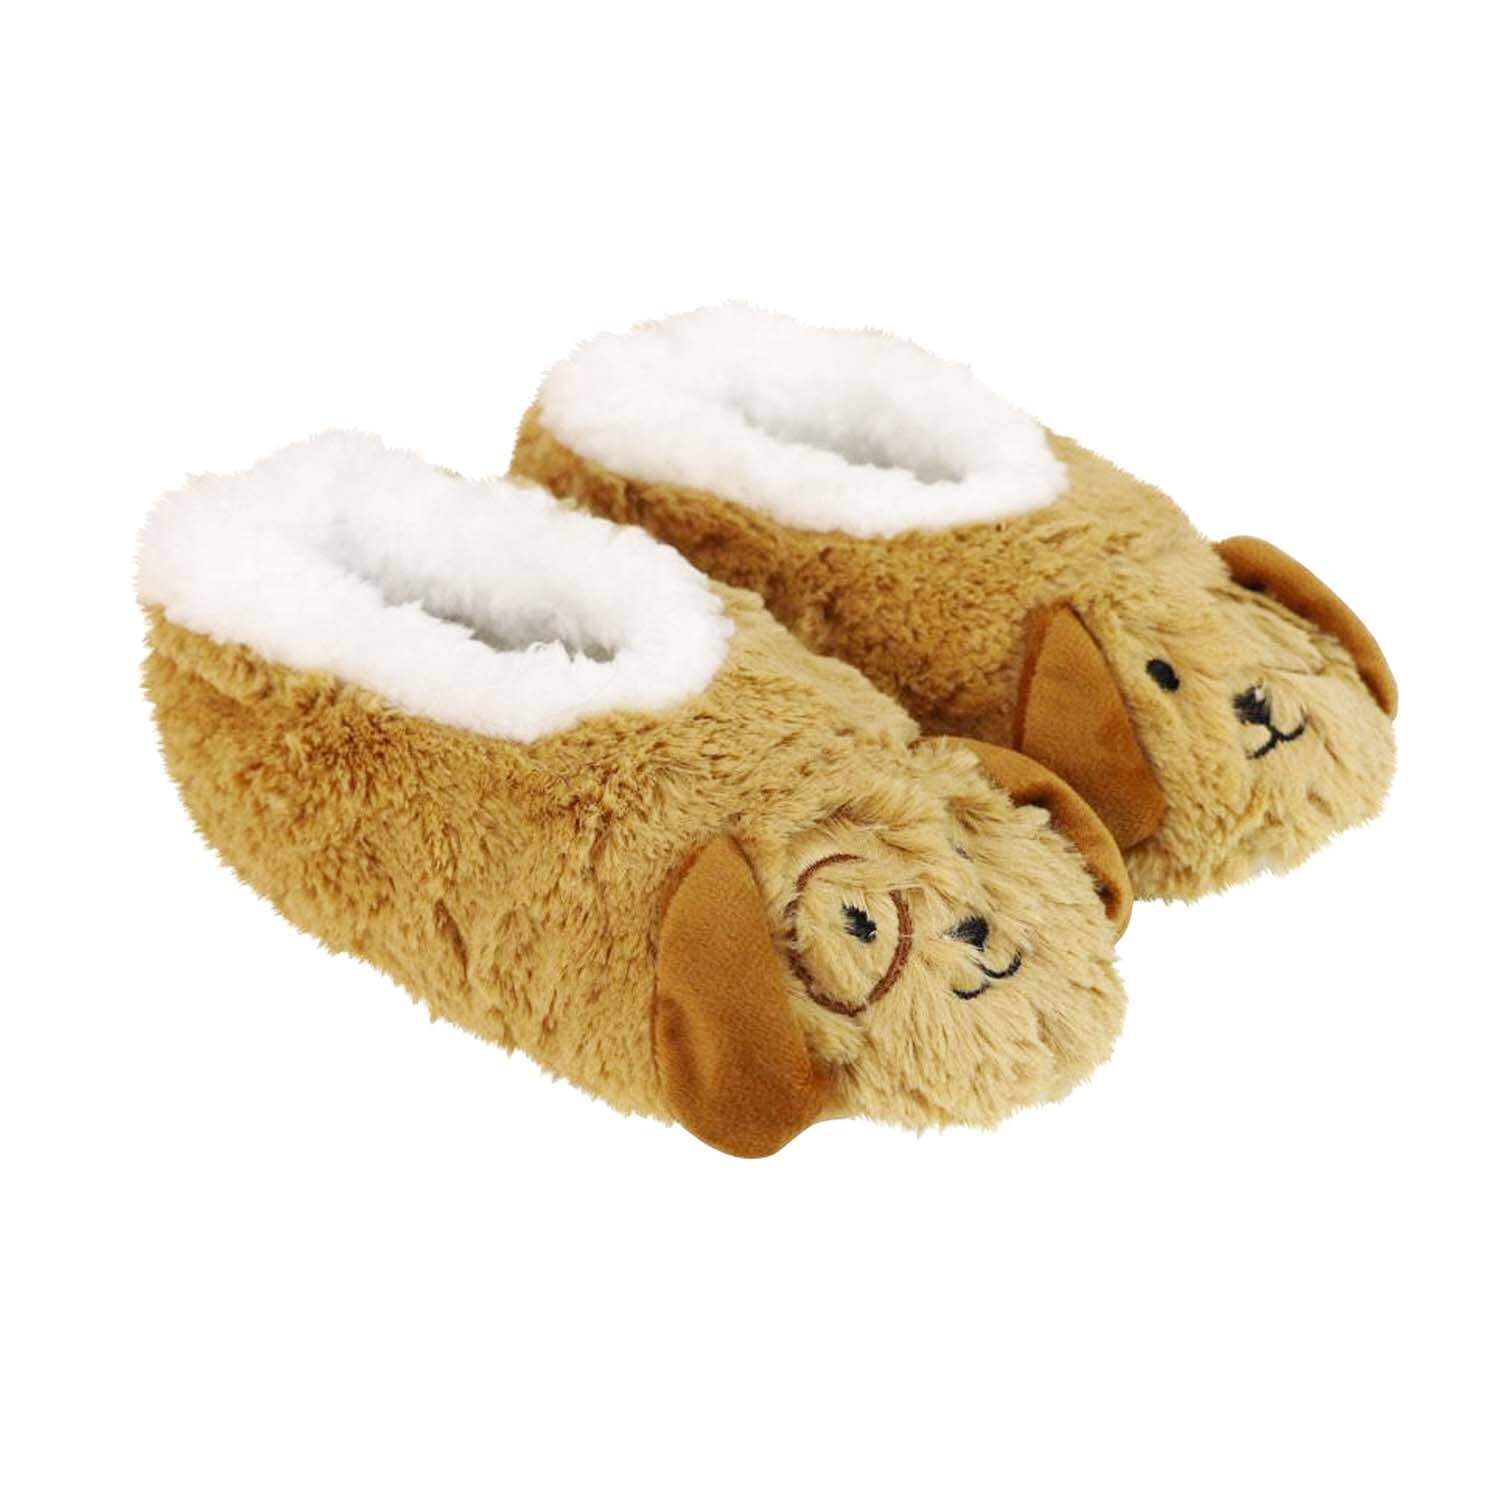 SLUMBIES-FURRY-FOOT-PALS-CRITTERS-Women-039-s-Soft-Slippers-Socks-Non-Slip-NEW thumbnail 9